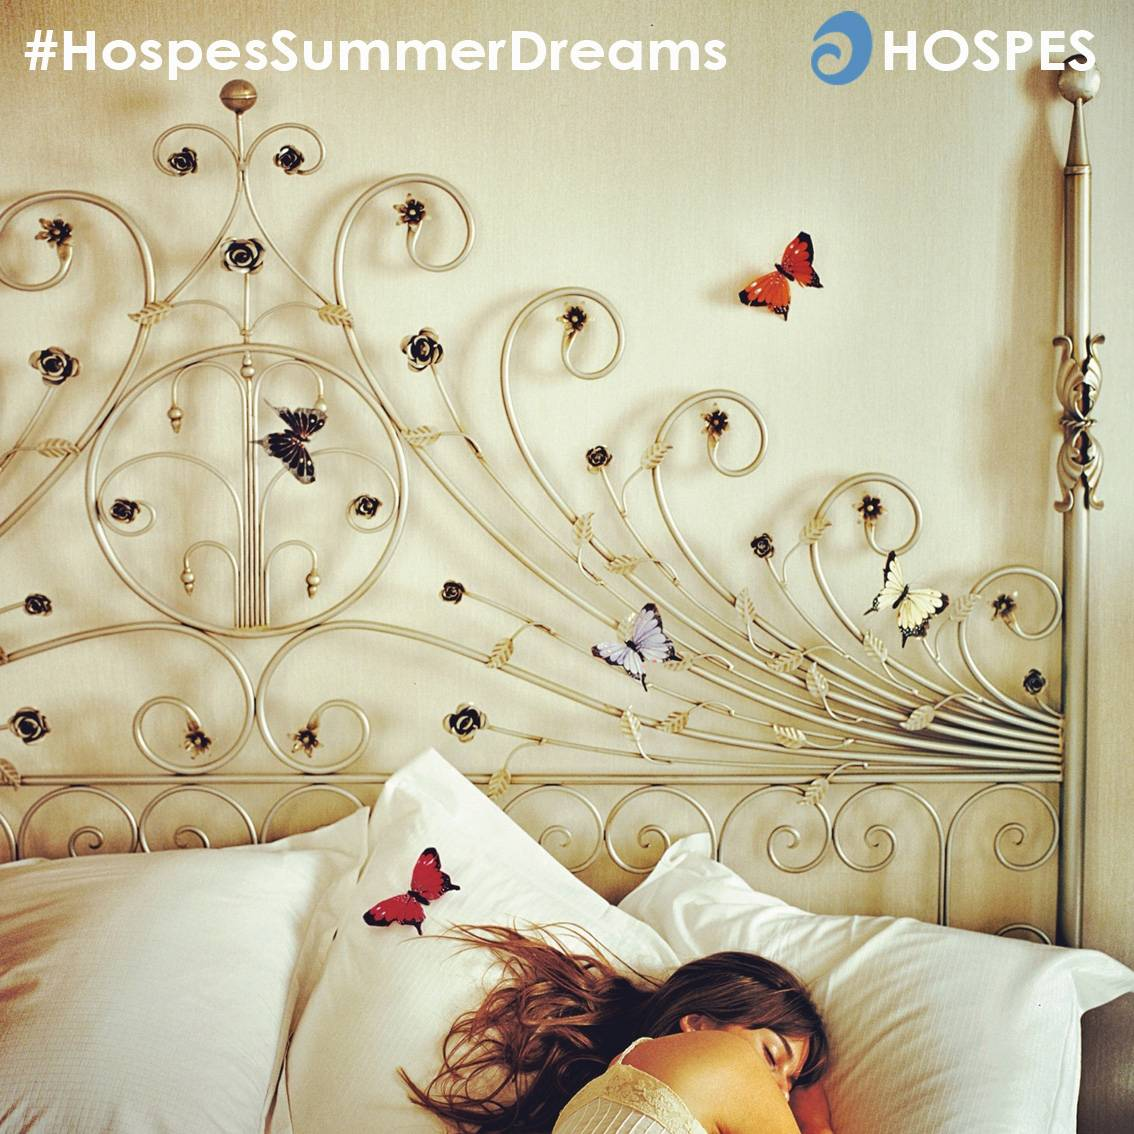 Win your dream holidays at Hospes Infinite Places with Instagram